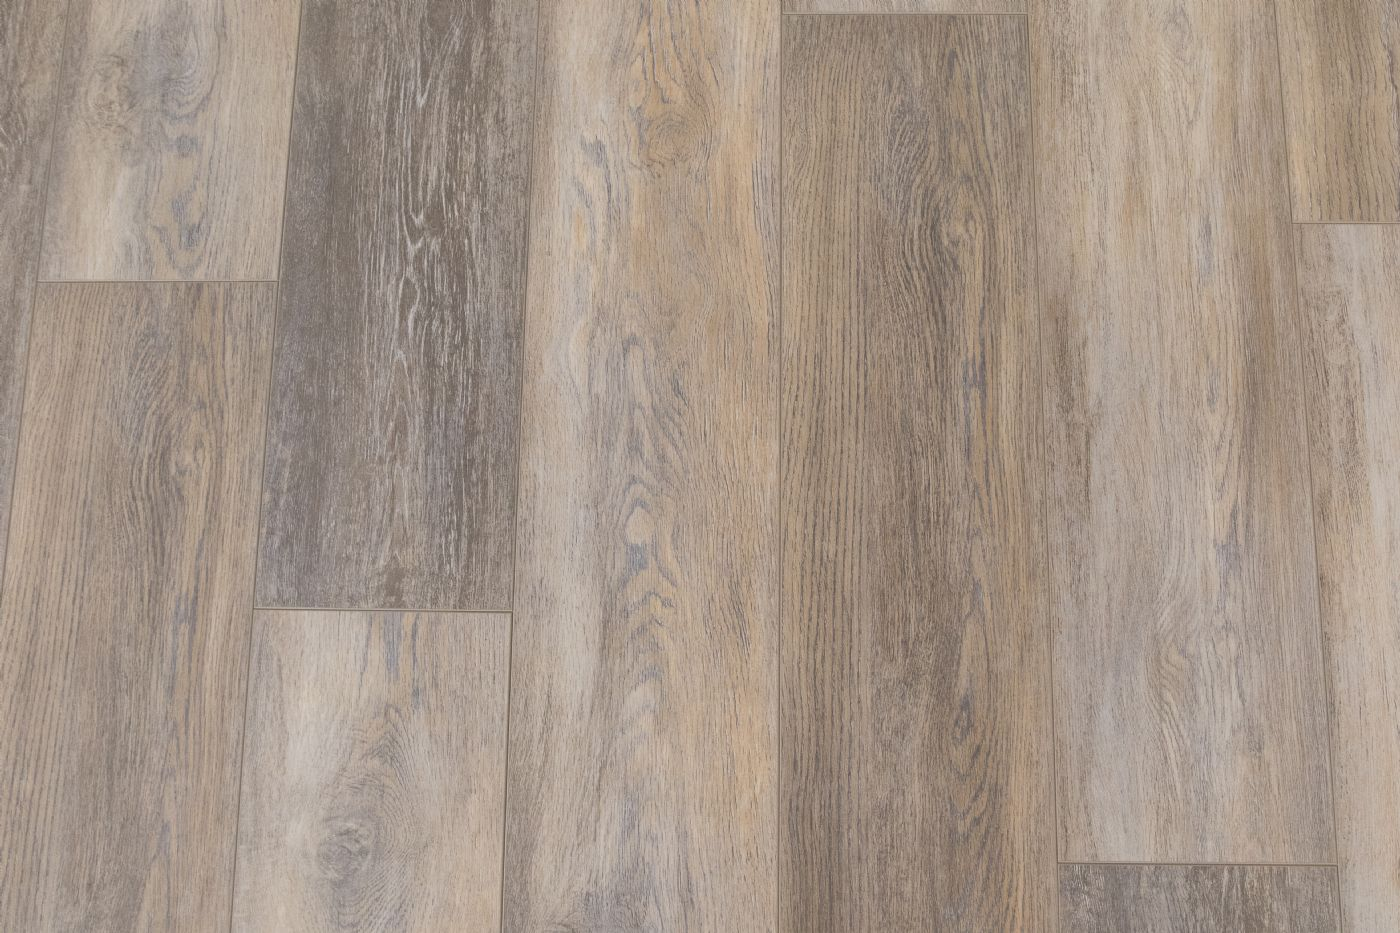 Weathered Oak Prestige Laminate Flooring Floors